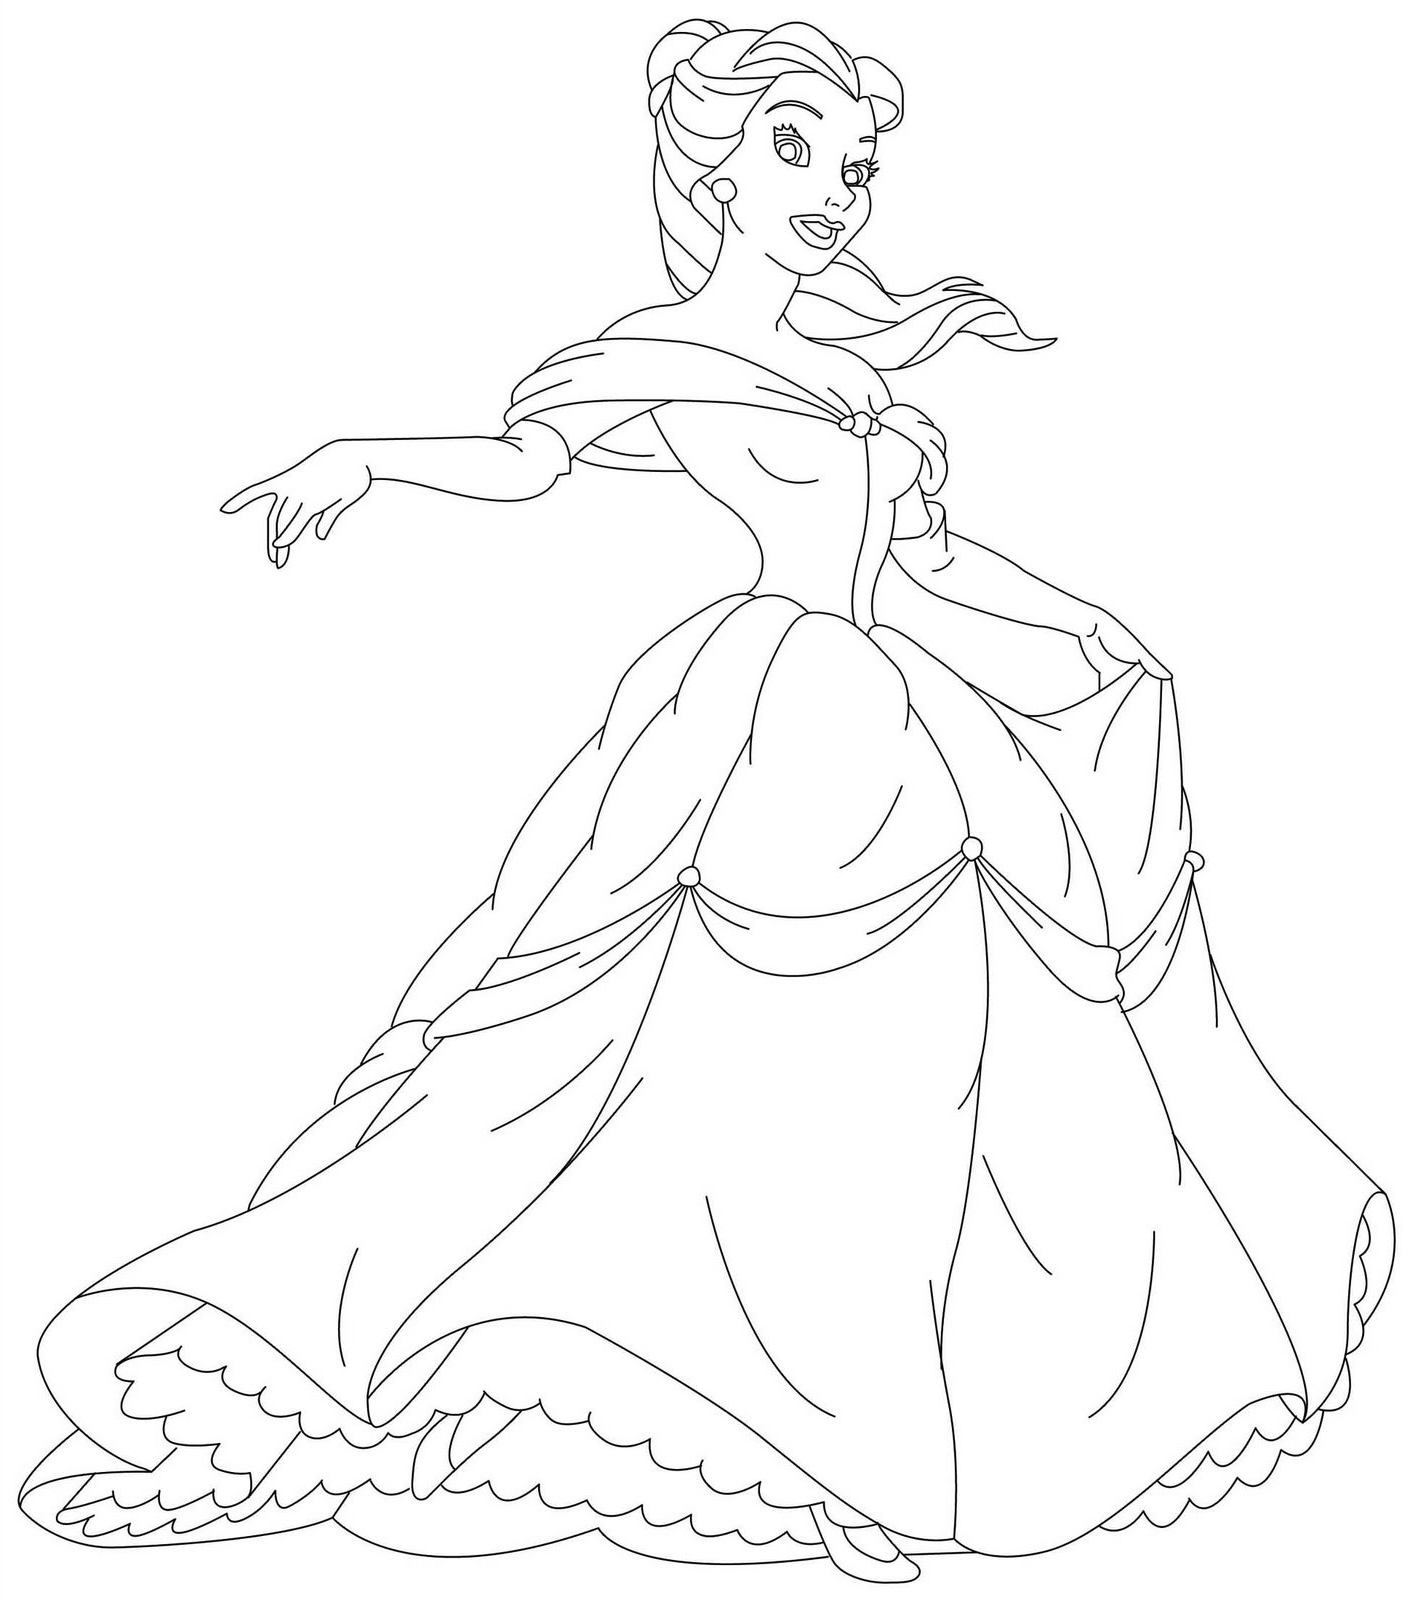 coloring pages of disney princesses - photo#29